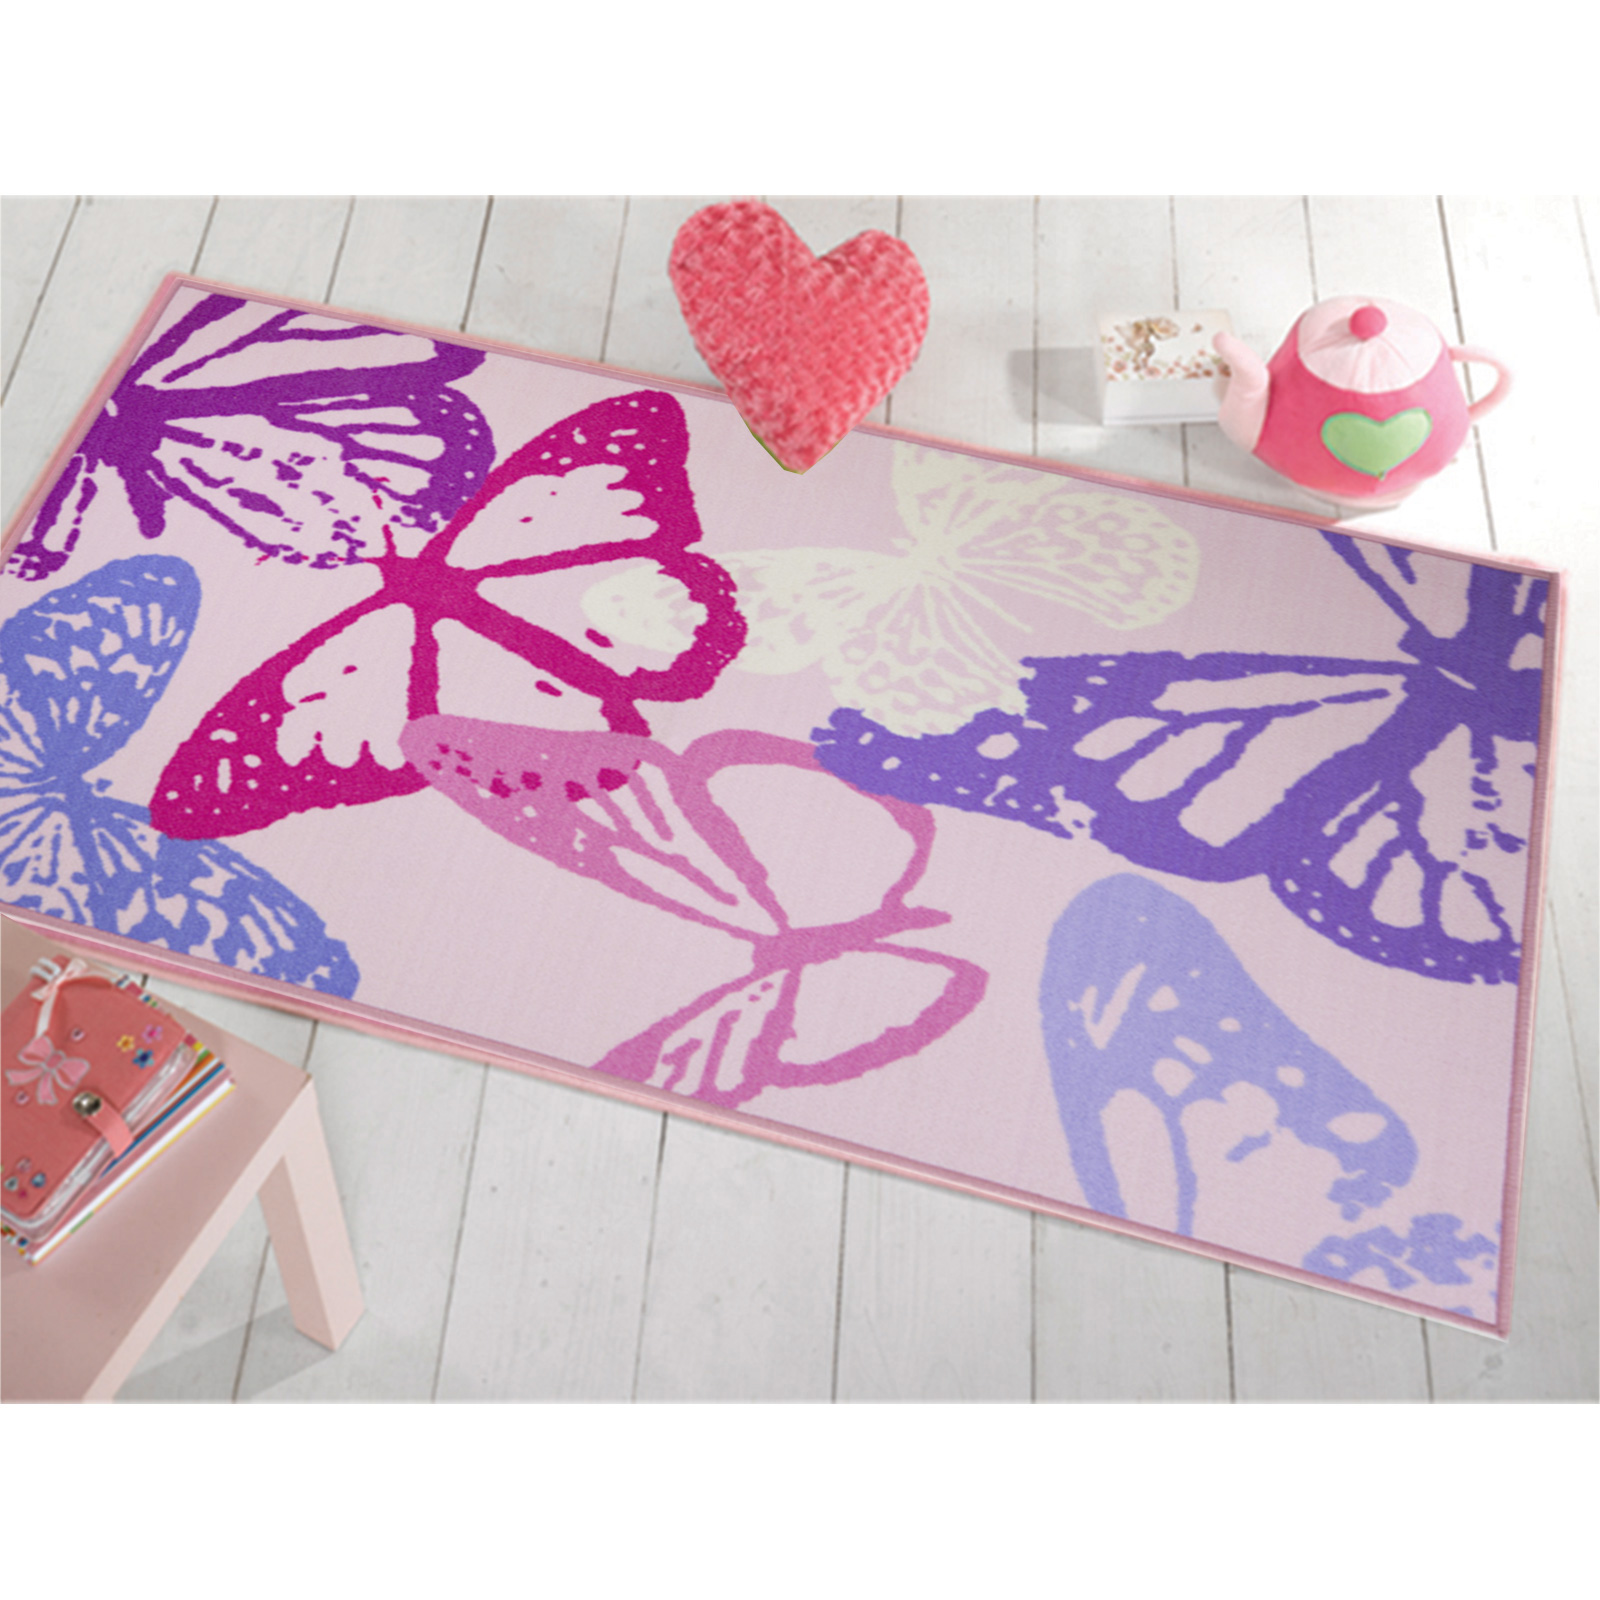 details about kids fun playtime carpet rug for childrens bedroom